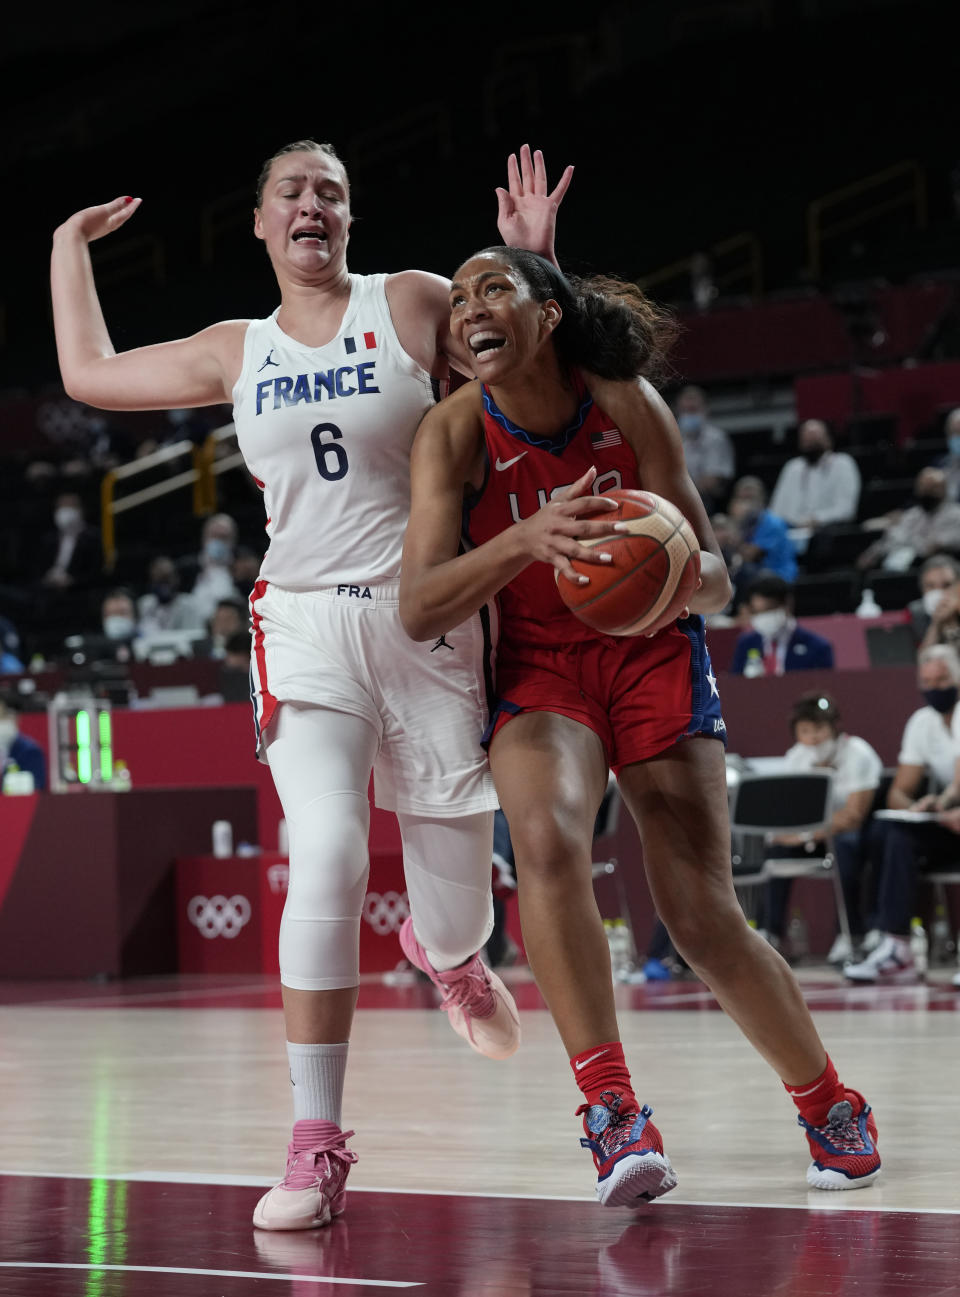 United States' A'Ja Wilson (9), right, drives around of France's Alexia Chartereau (6) during women's basketball preliminary round game at the 2020 Summer Olympics, Monday, Aug. 2, 2021, in Saitama, Japan. (AP Photo/Eric Gay)